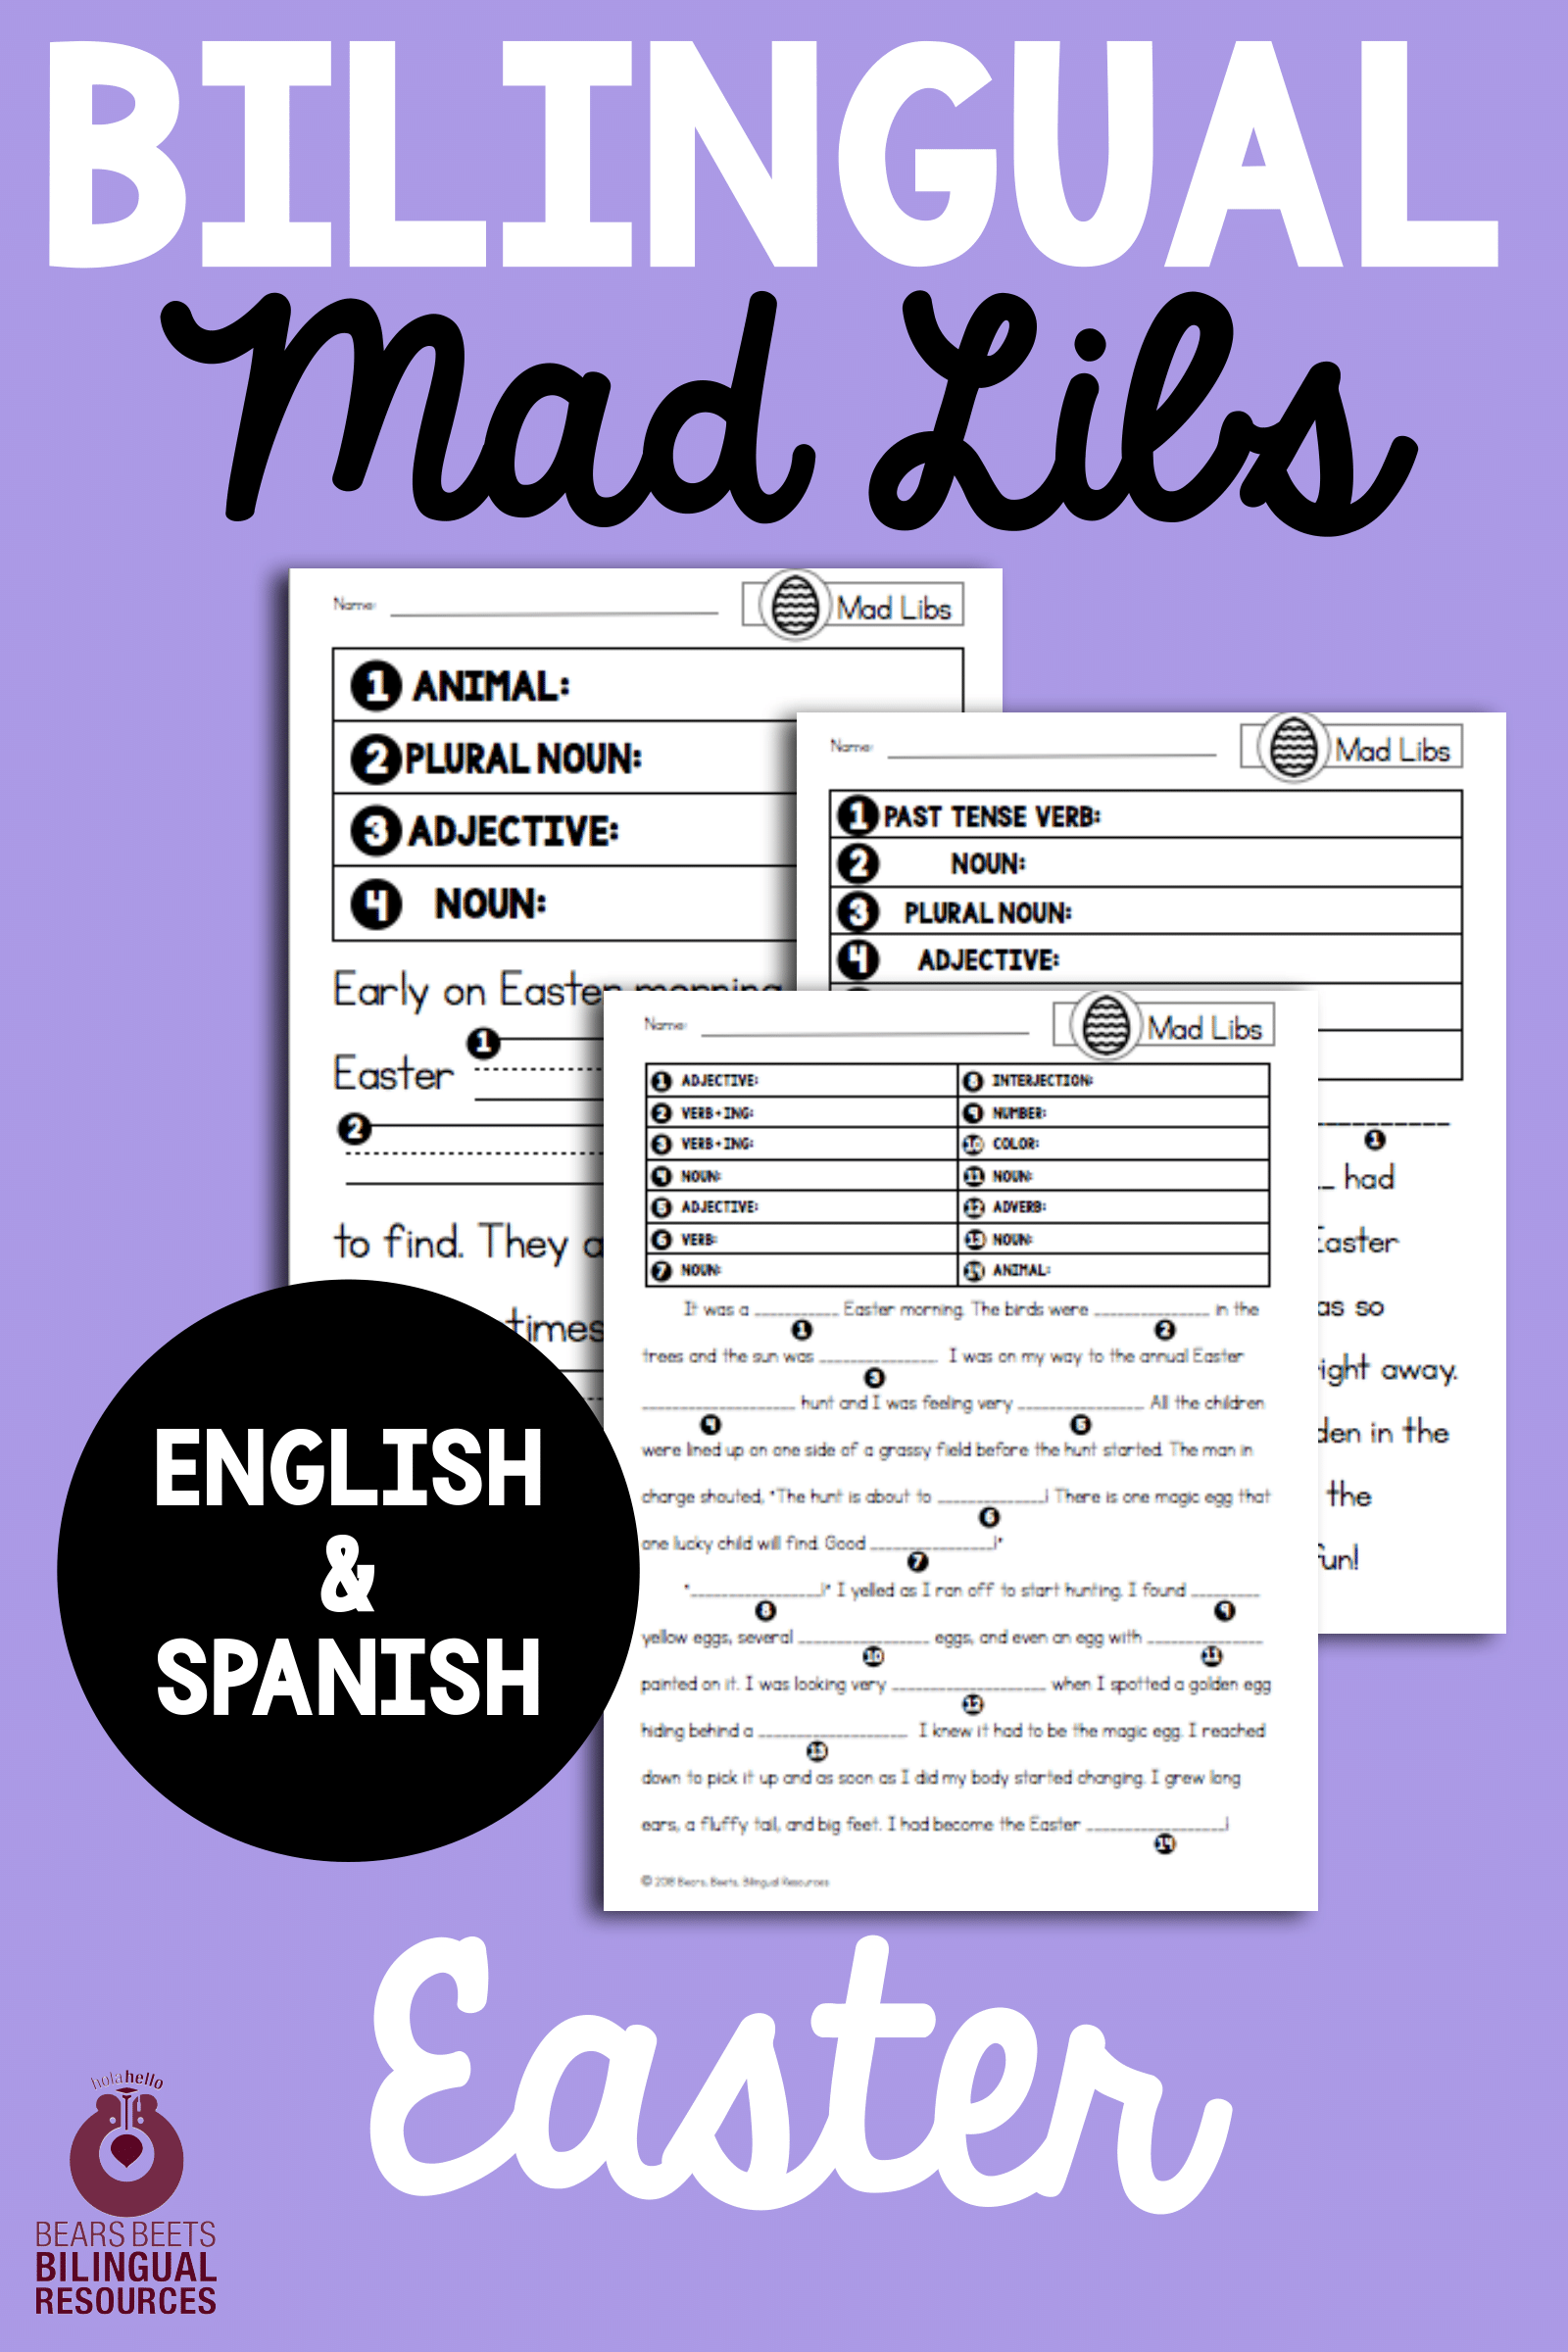 Bilingual Easter Mad Libs With Images